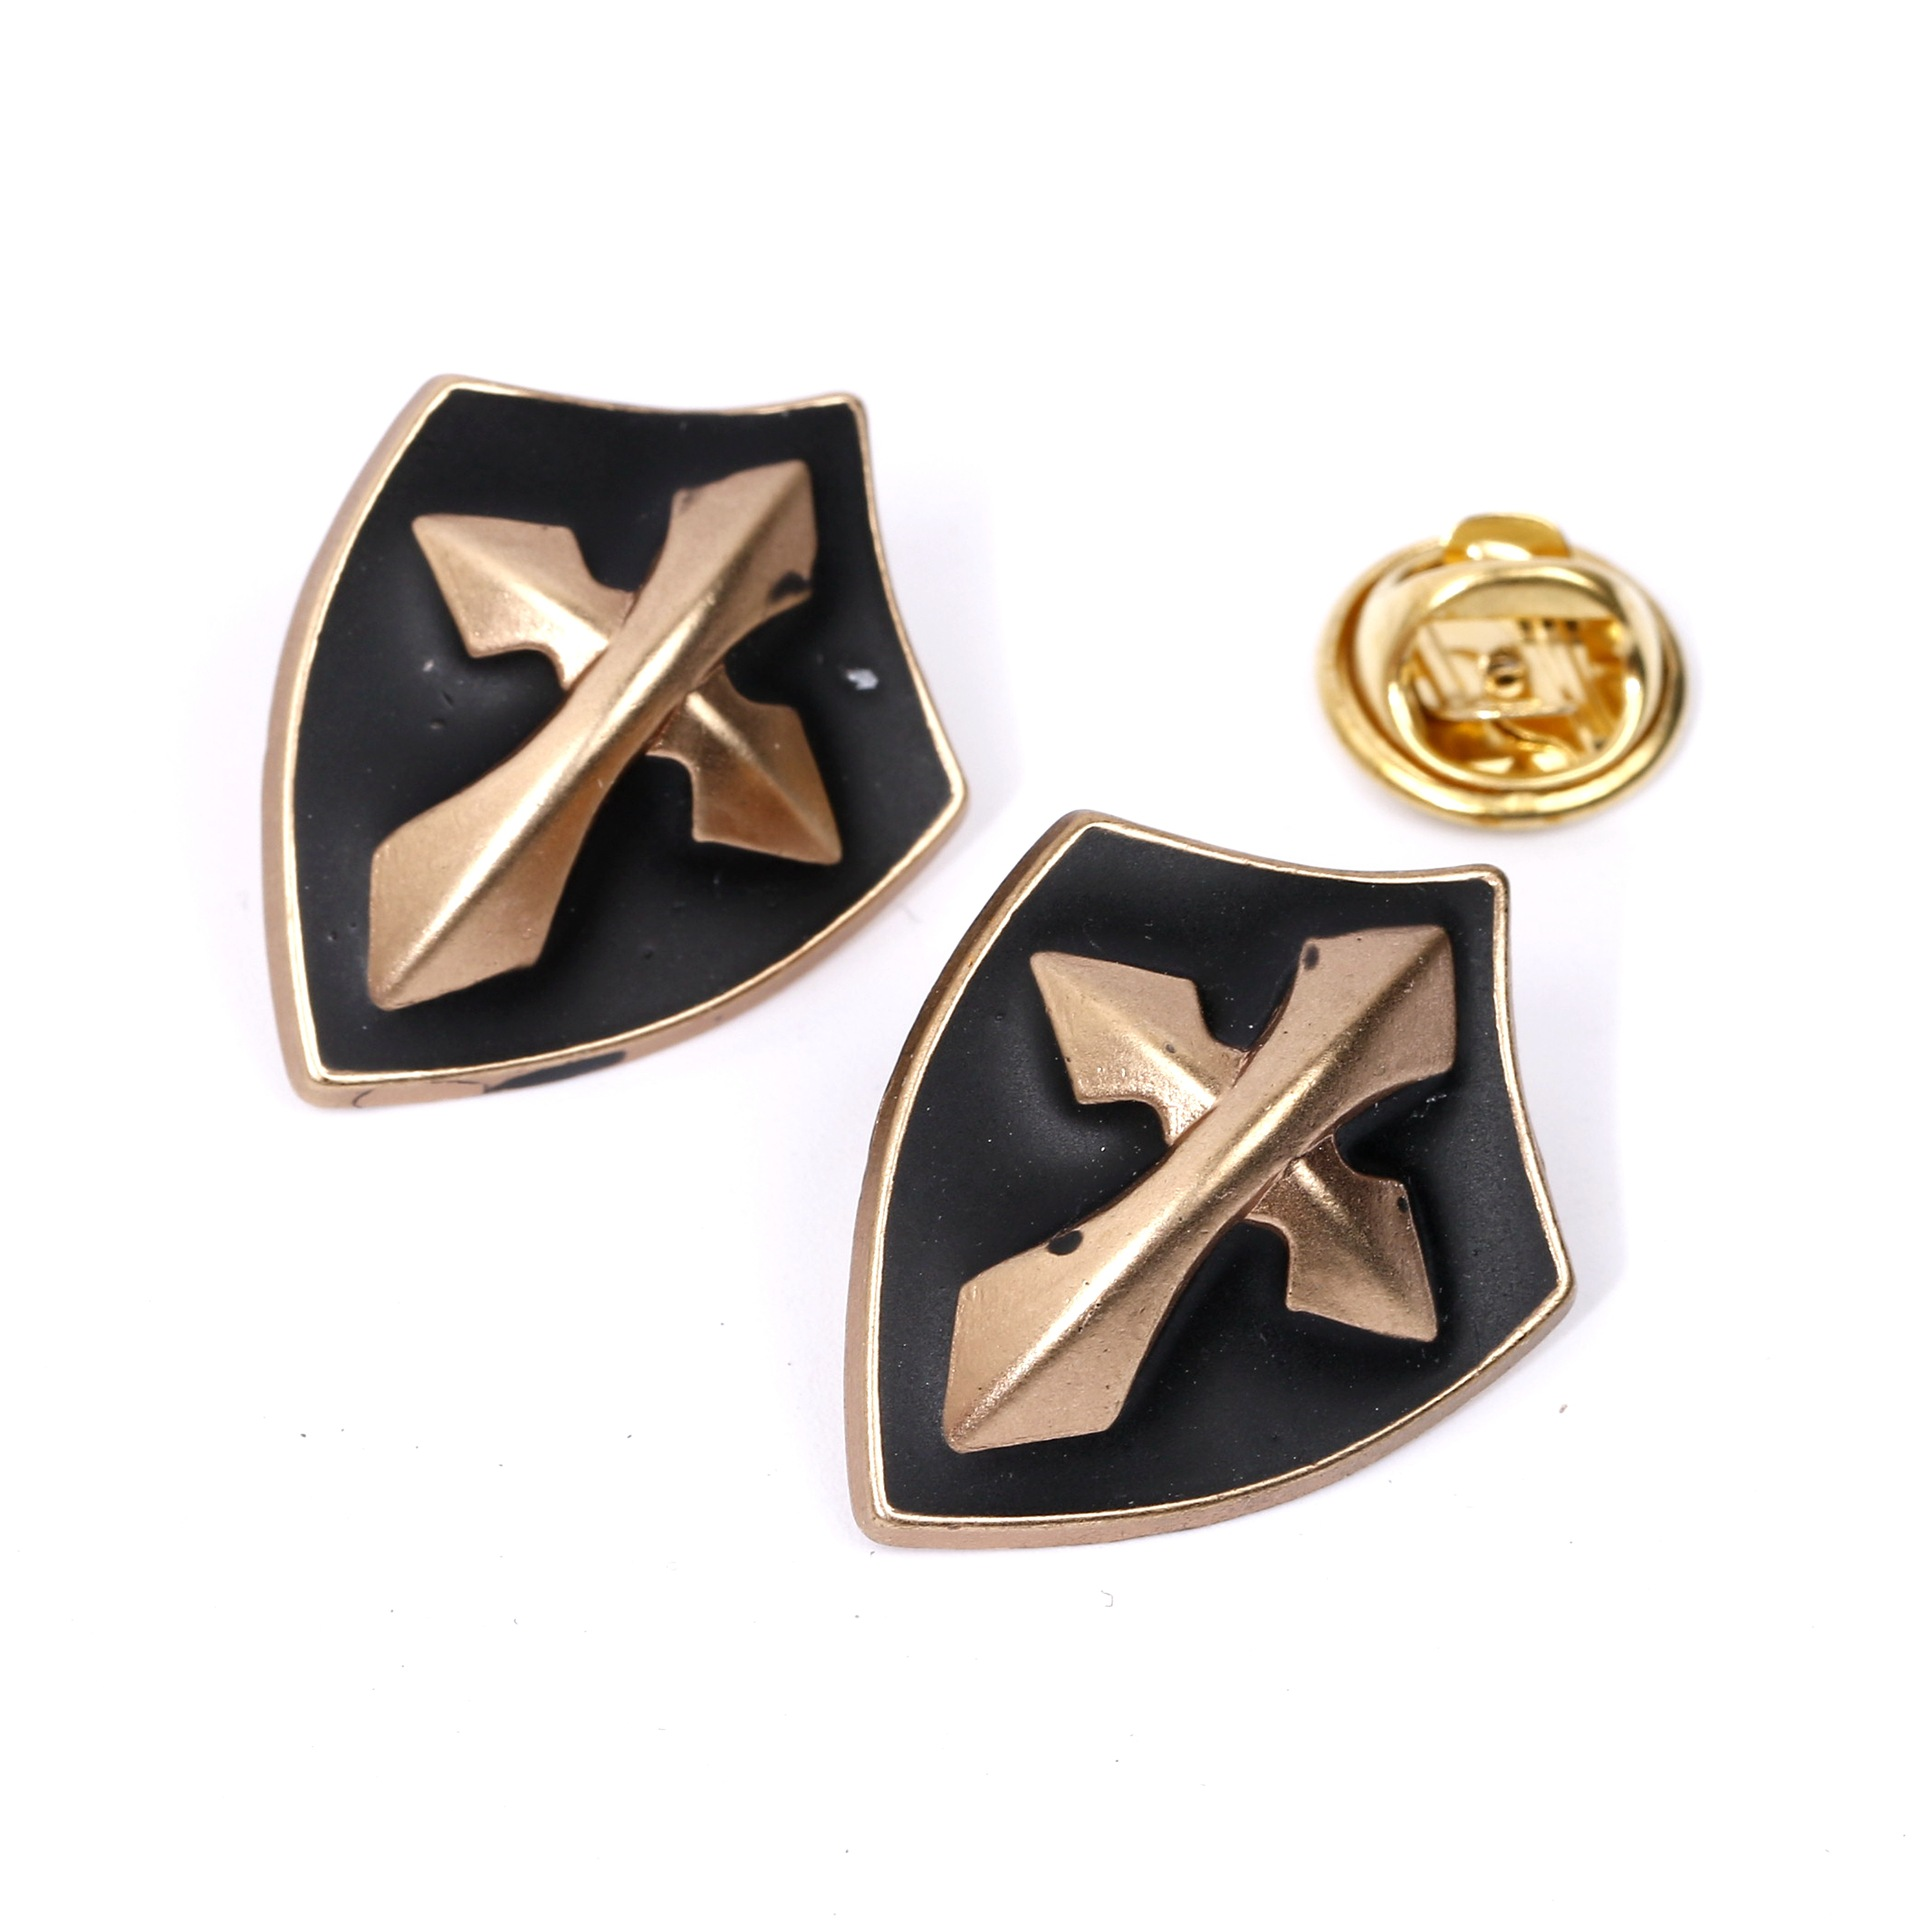 30 pieces/lot shield Cross Brooch Paint Enamel Brooches Men and Women Suits Dress Hat Collar Brooch Pins Scarf Buckle Gift